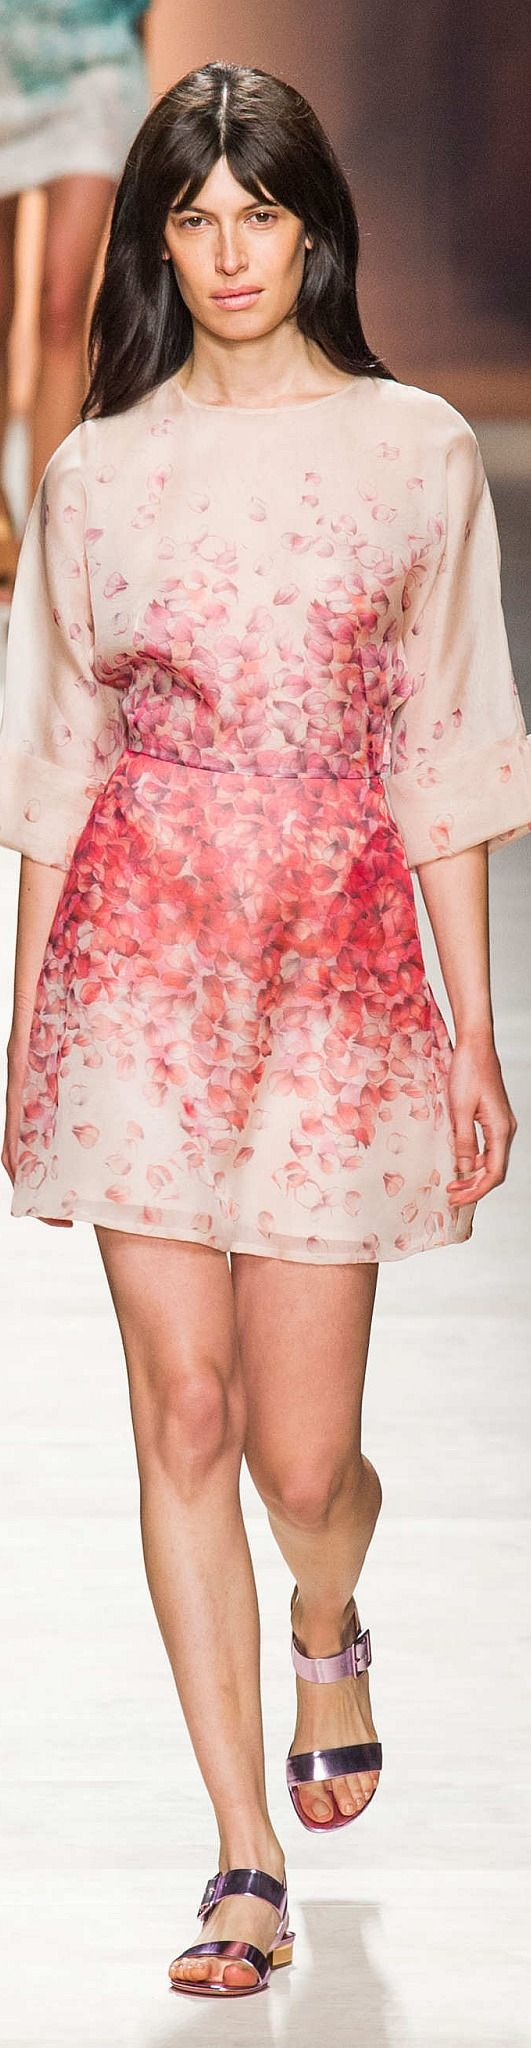 ZARA Spring-Summer Collection 2015 Latest Women Dresses, Tops, T Shirts, Skirts & Accessories (15)